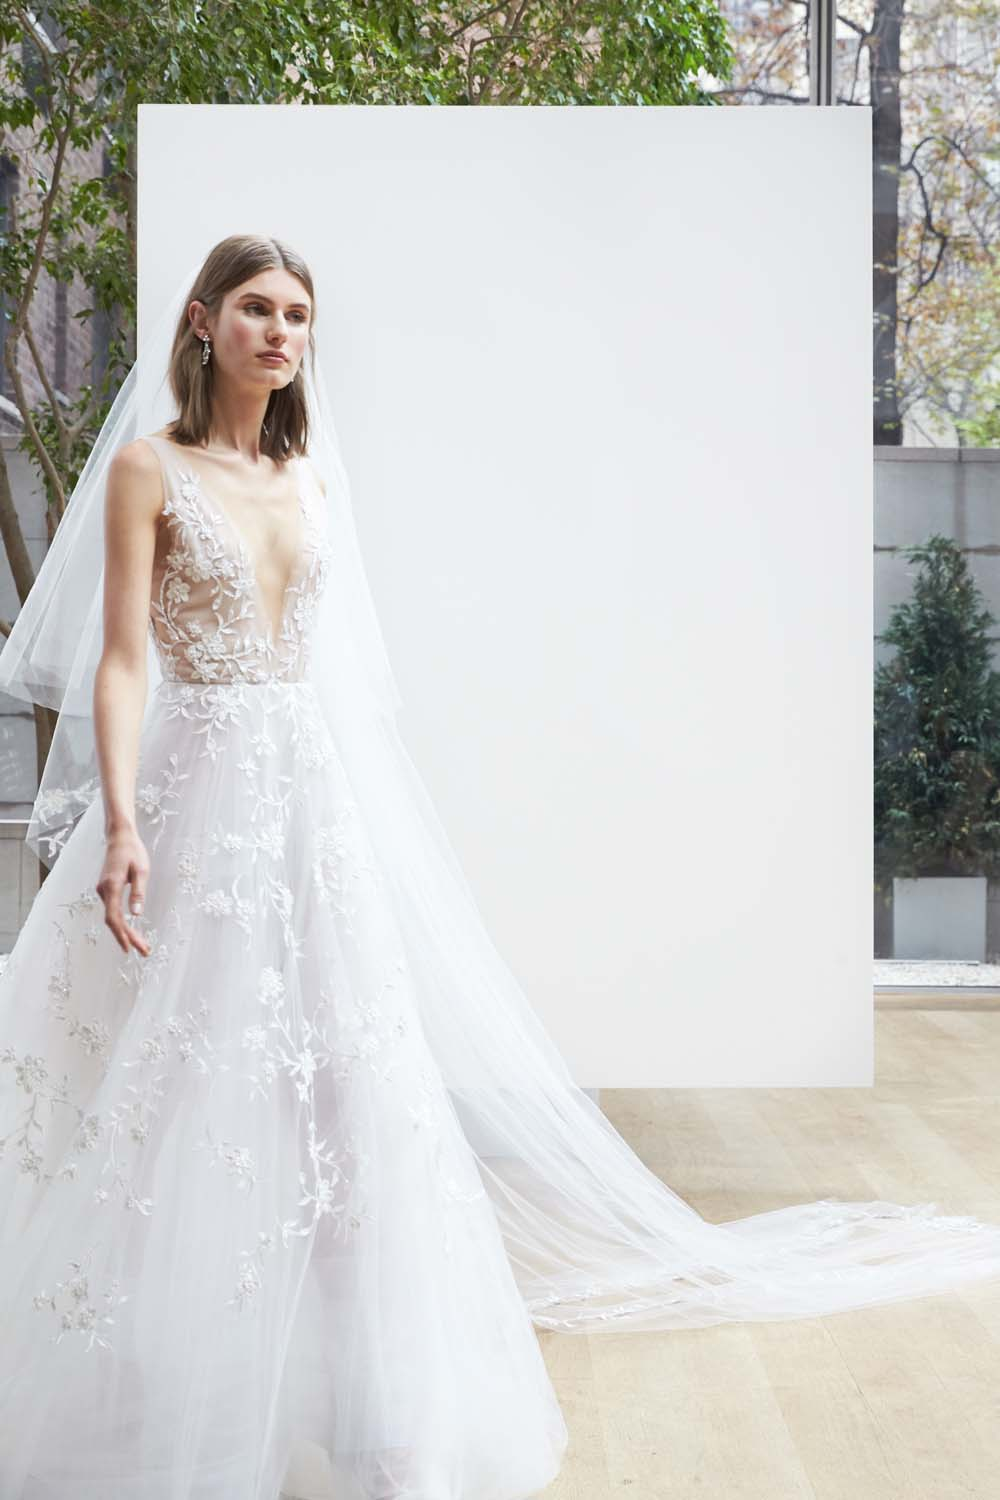 Oscar de la renta spring 2018 wedding dresses weddingbells junglespirit Choice Image